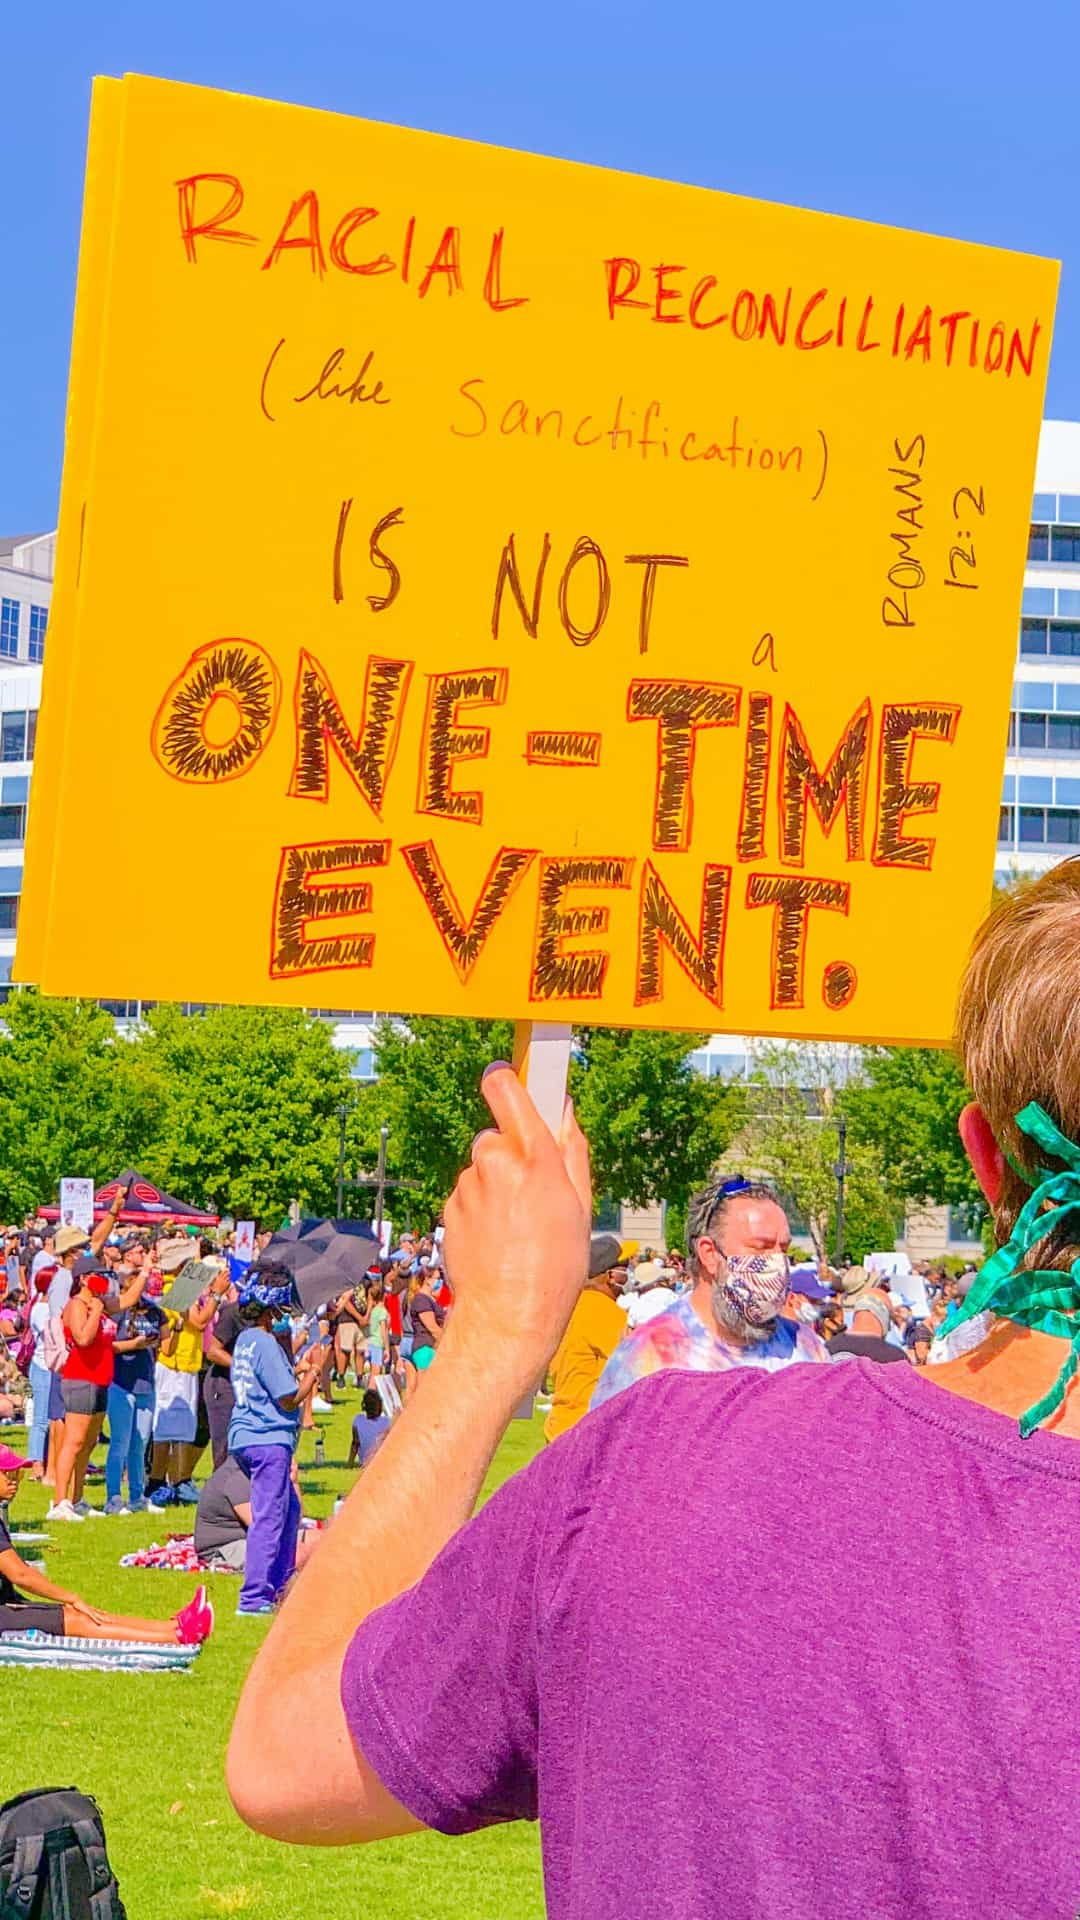 racial reconciliation is not a one-time event protest sign